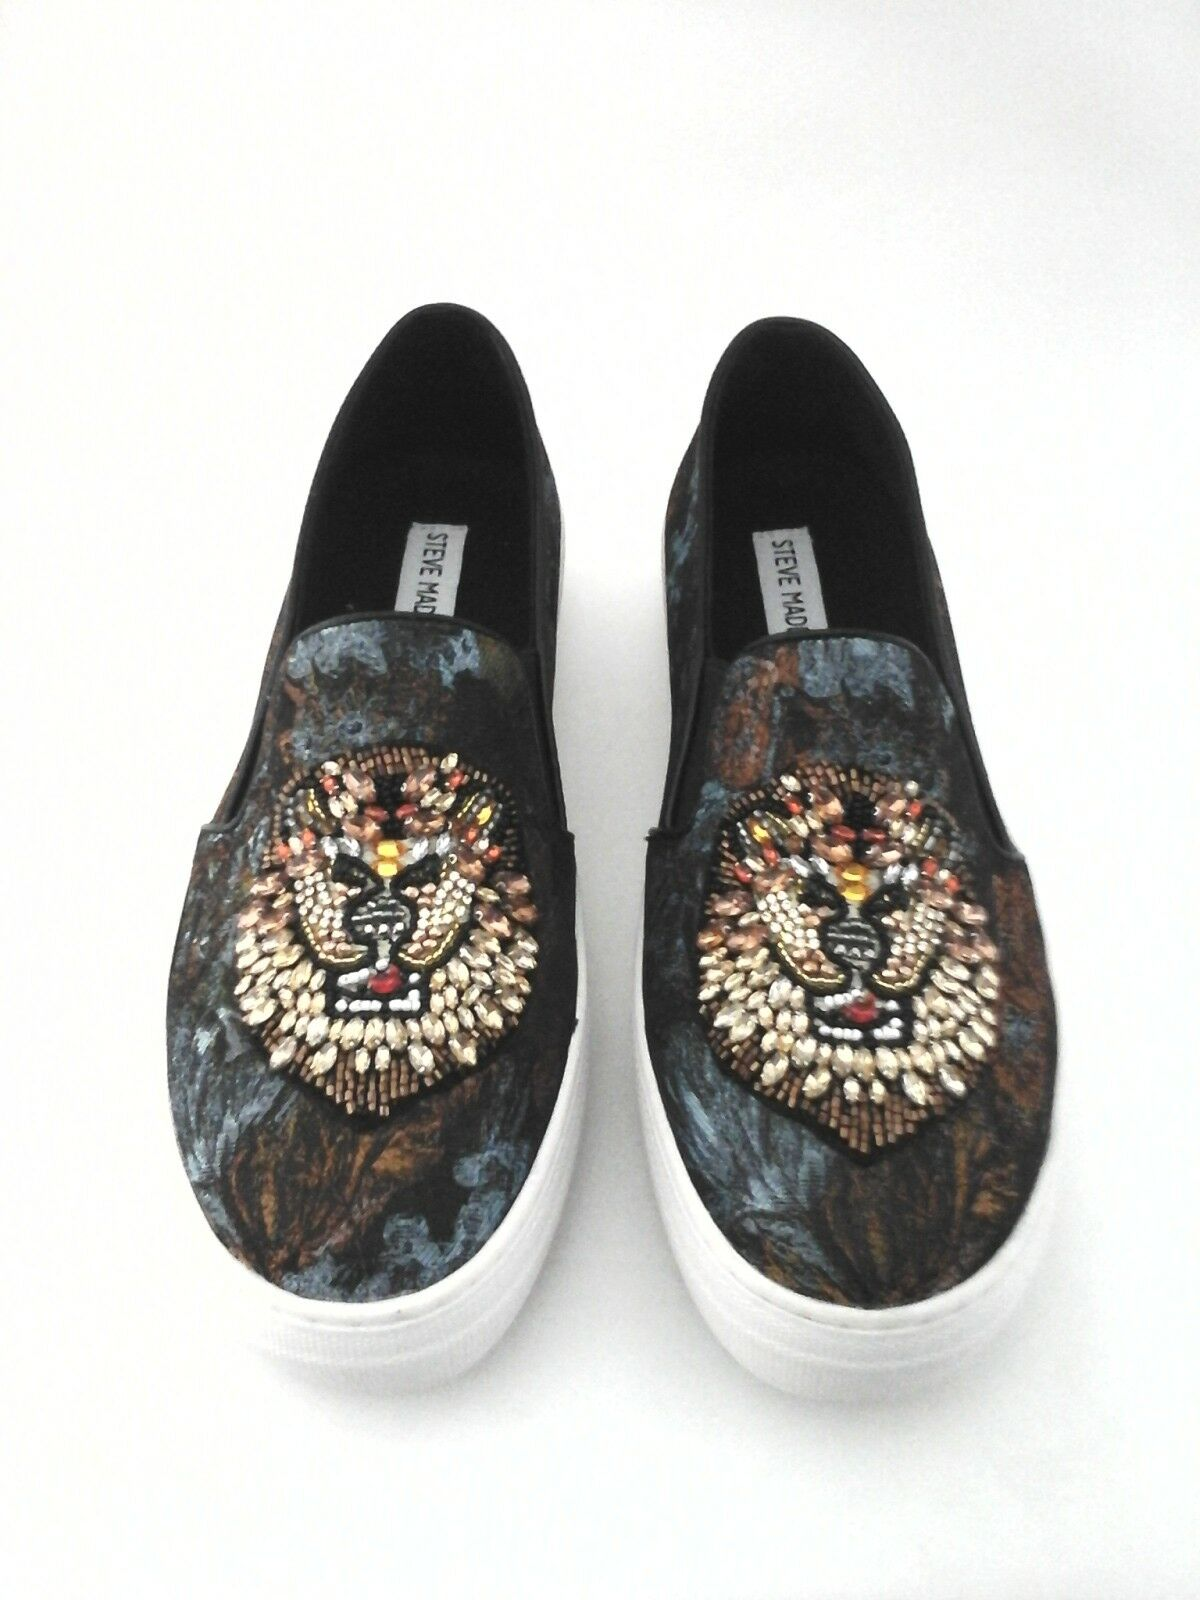 Steve Madden Fiasco Women's Beaded Animal Slip On Sneakers Shoes US 9 New